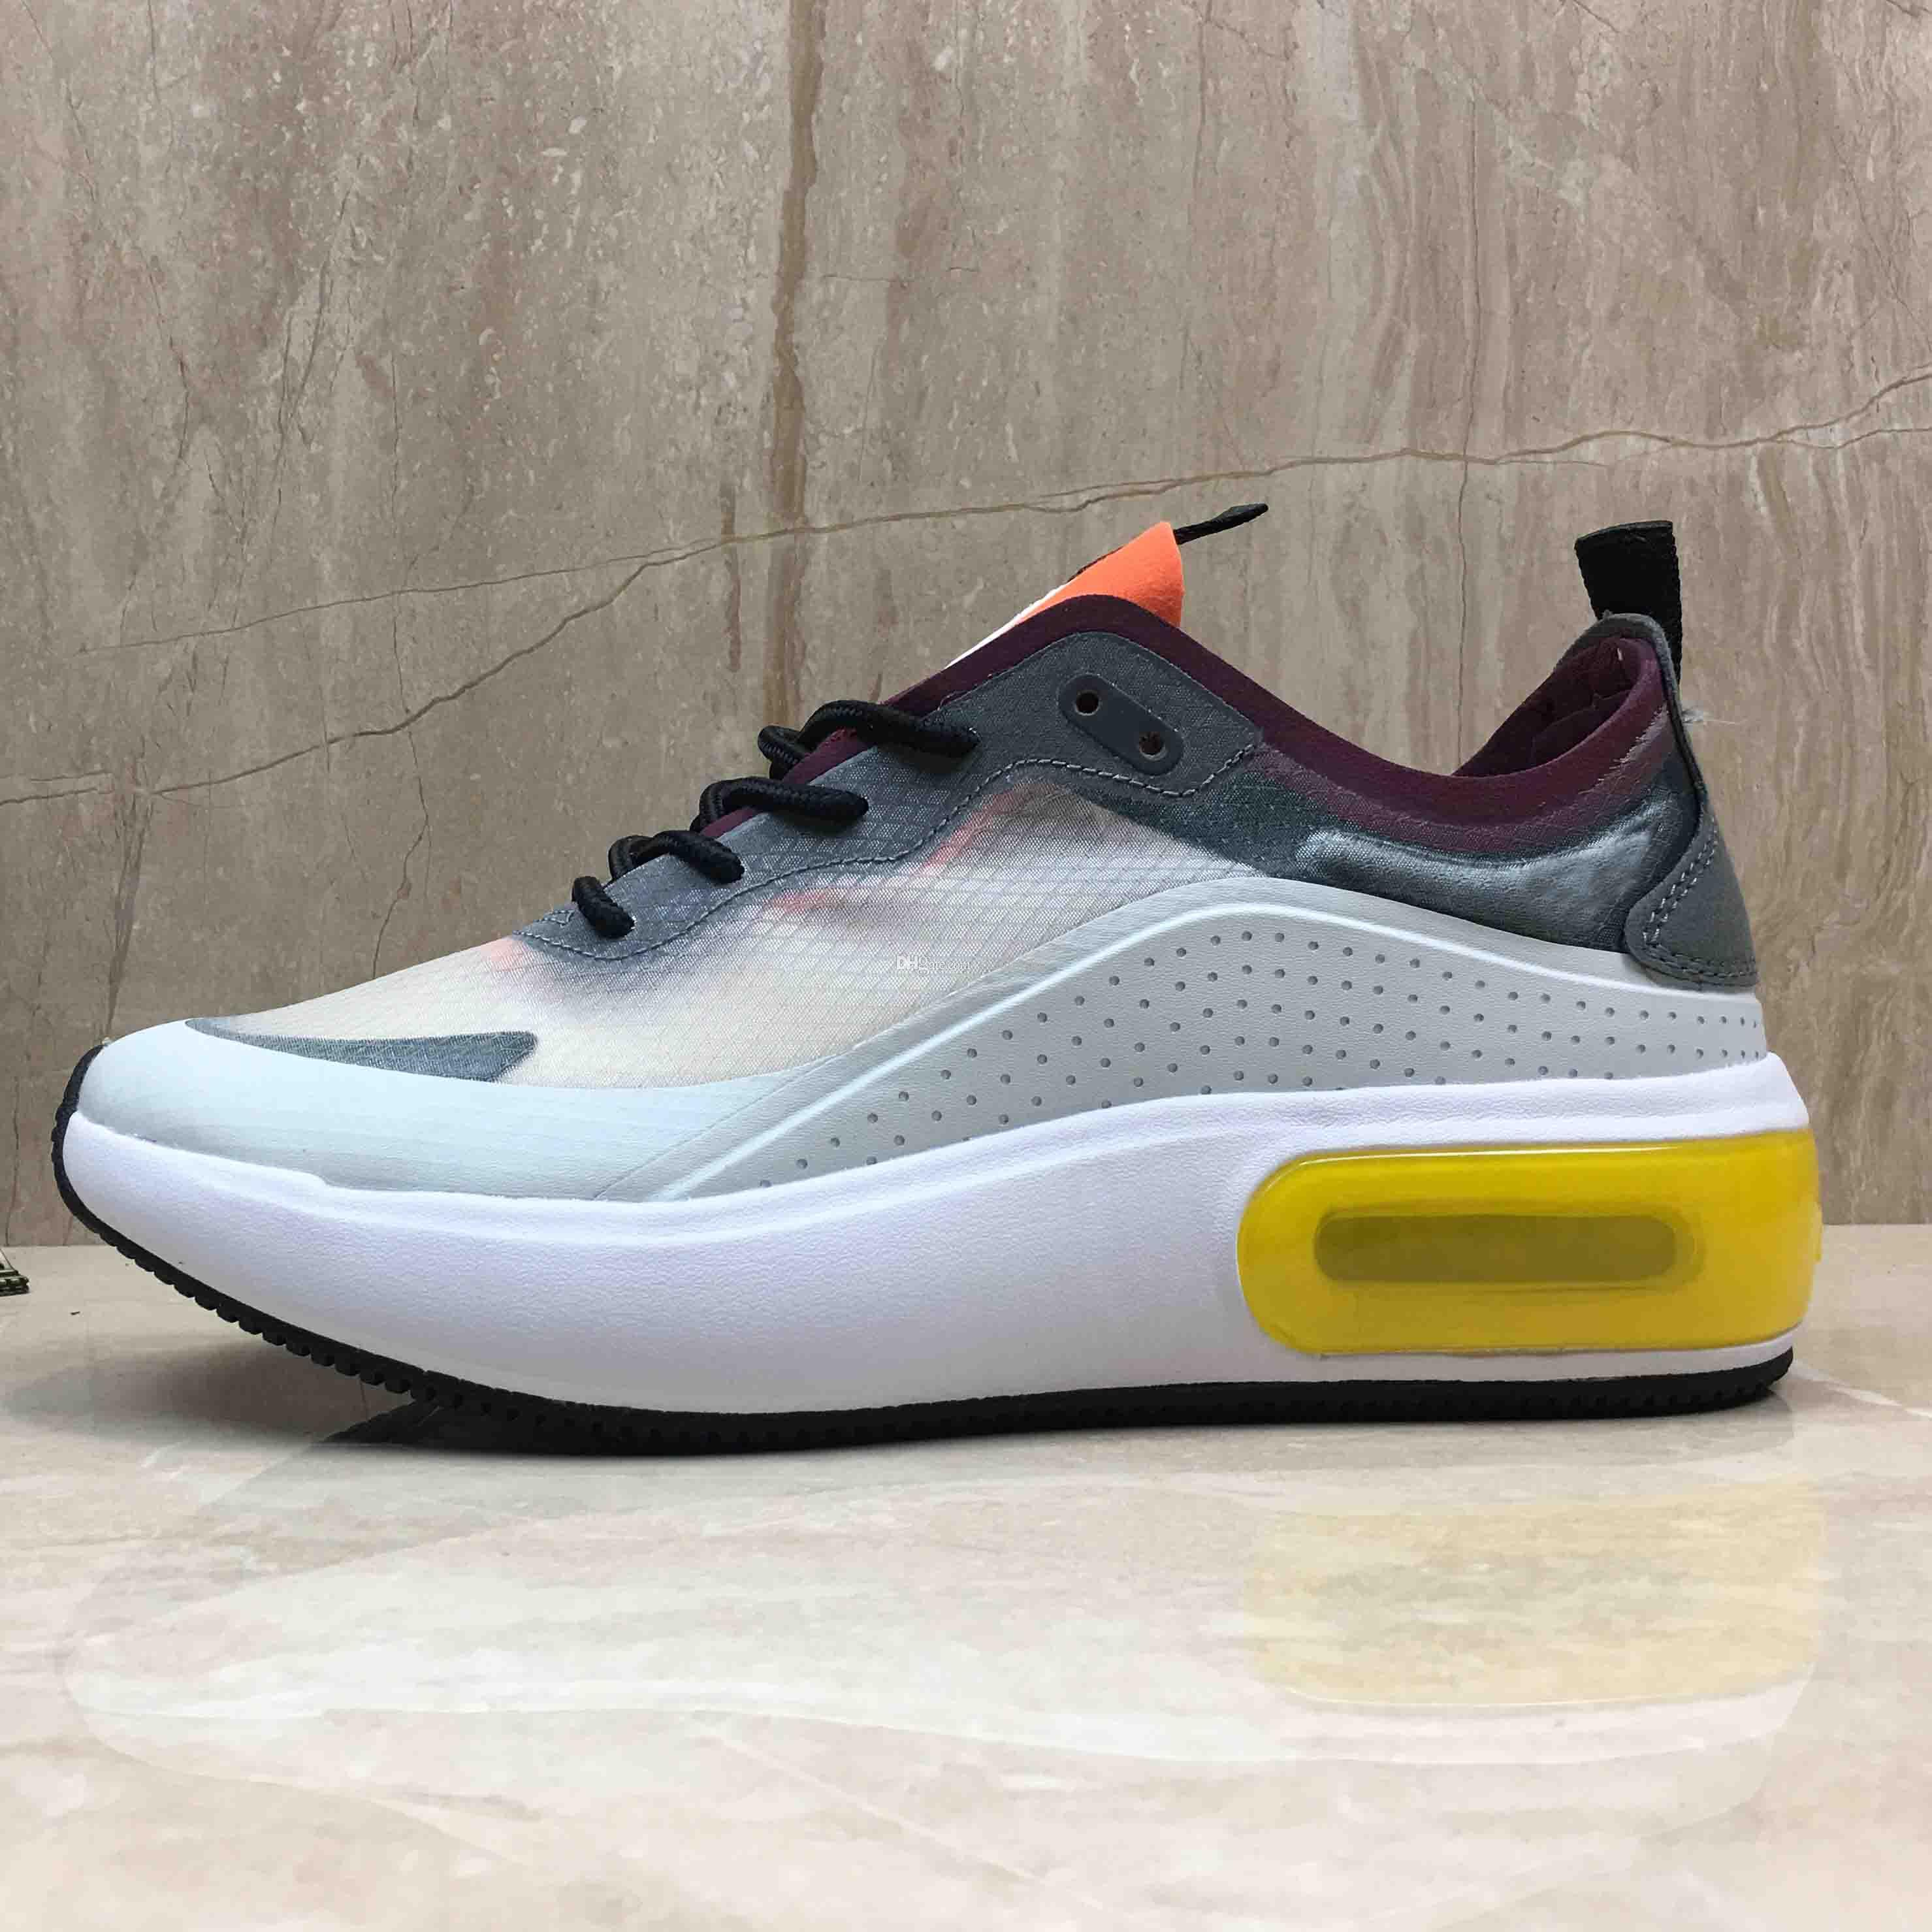 2019 Dia Se black pink women's shoes running shoes brand designer Red Maxes gray Dias Se Racer men's and women's sports shoes